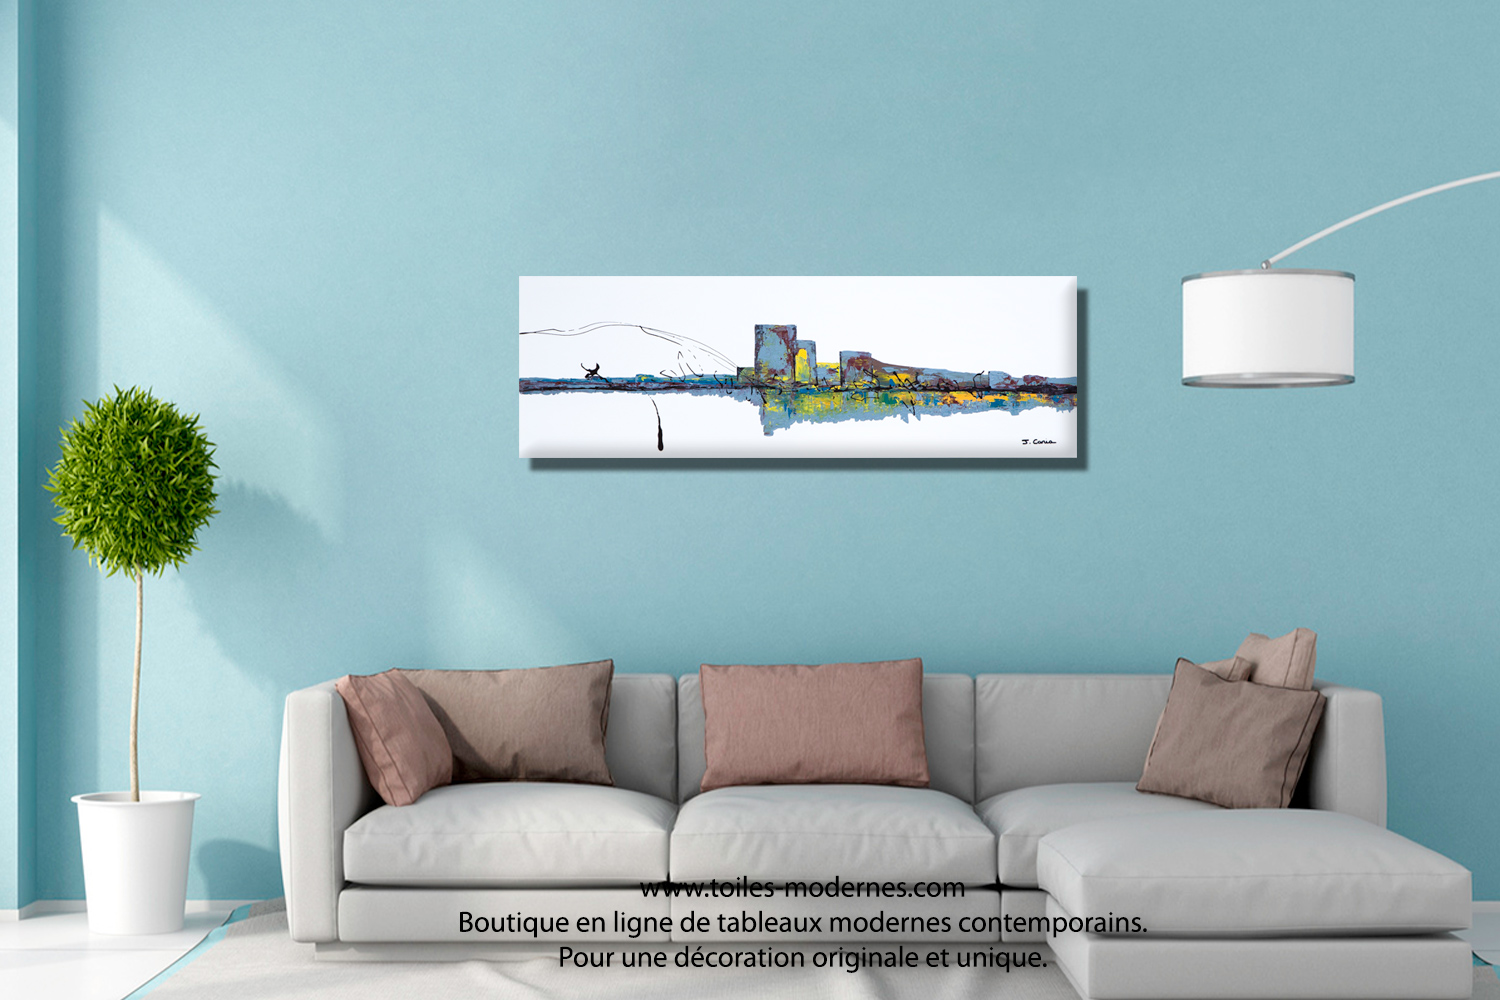 Jo lle caria artiste peintre toiles tableaux modernes contempor - Tableau decoratif salon ...